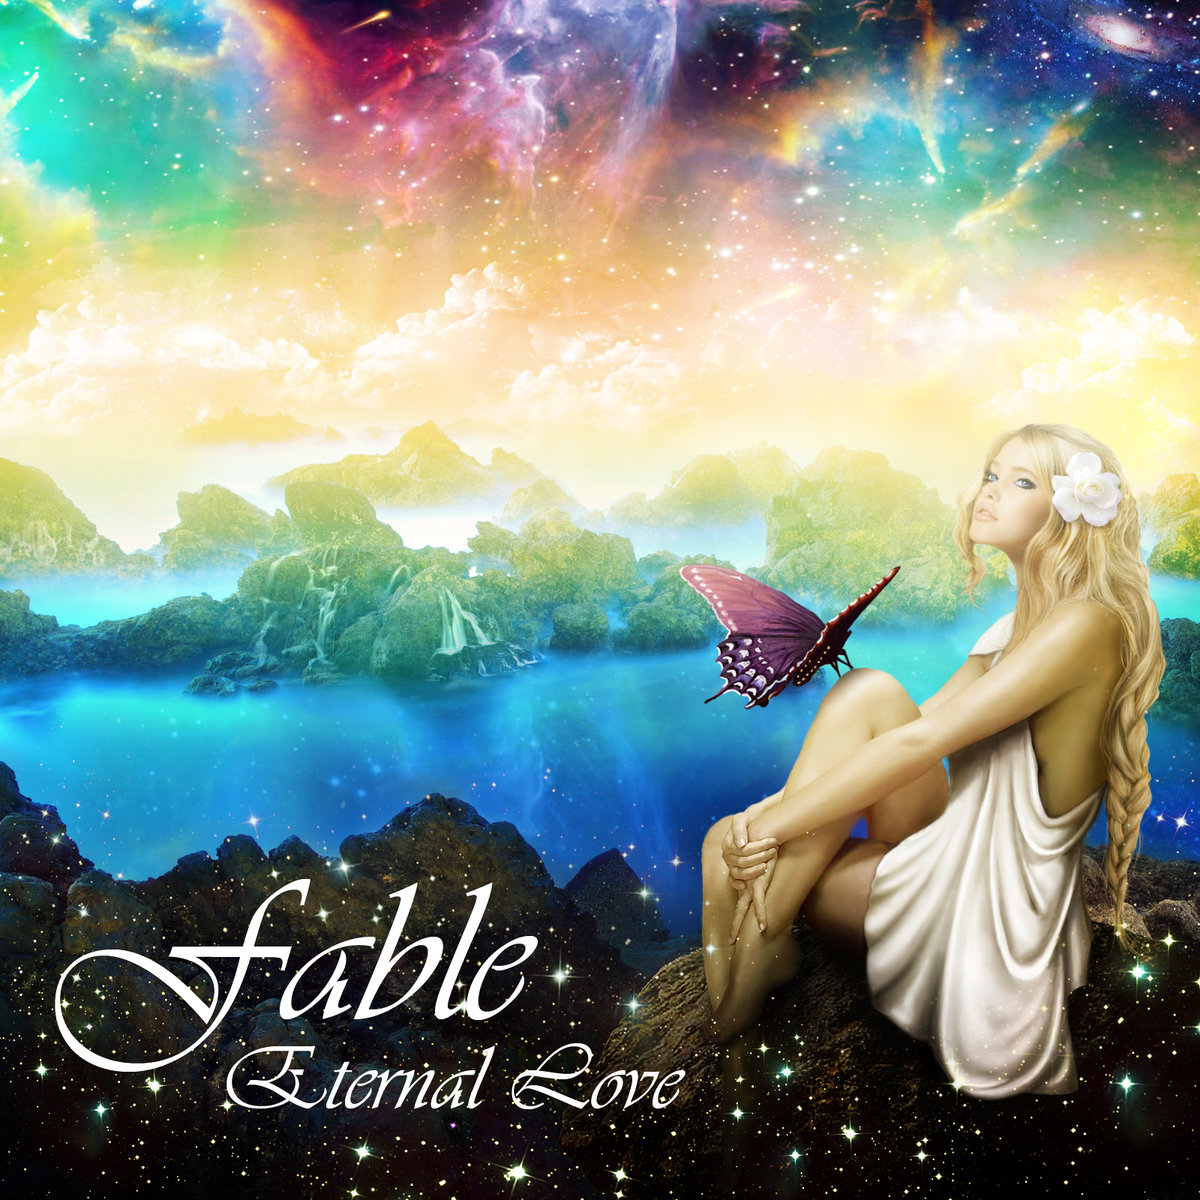 Eternal Love - Emerald Bay @ 'Fable' album (ambient, chill)